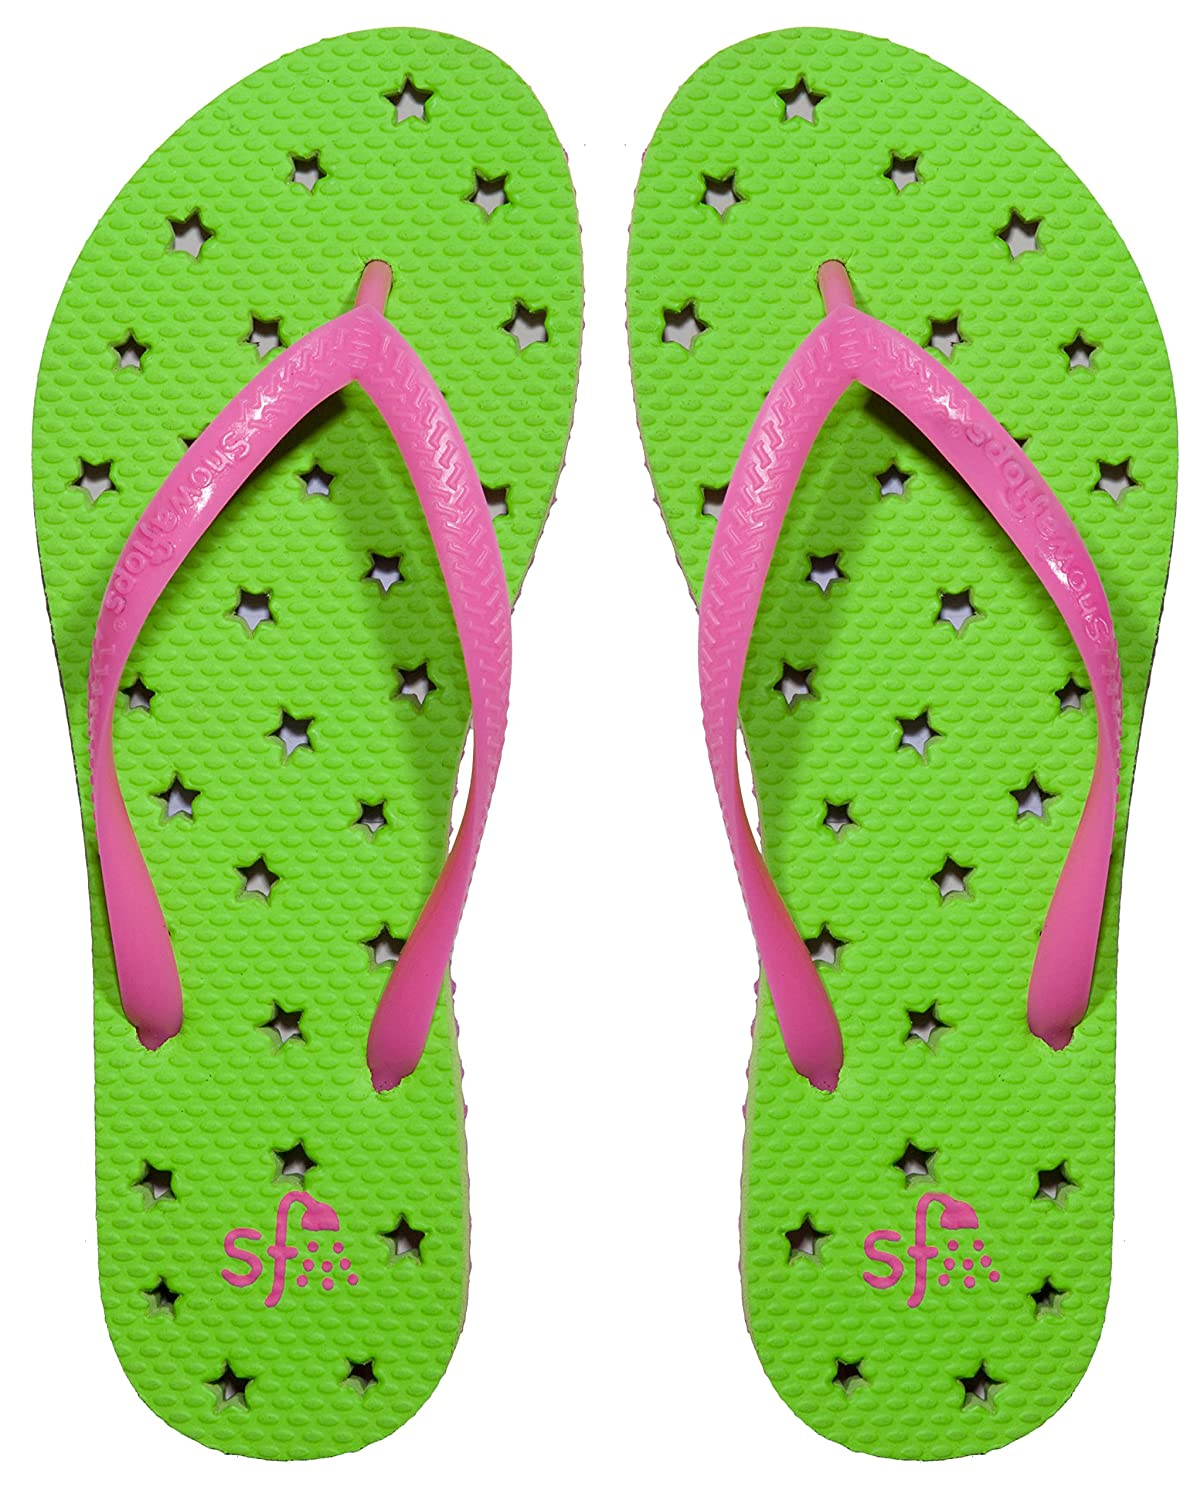 Showaflops Girl's Antimicrobial Shower & Water Sandals - Stars antimicrobial contaminant elimination from water and waste sludge